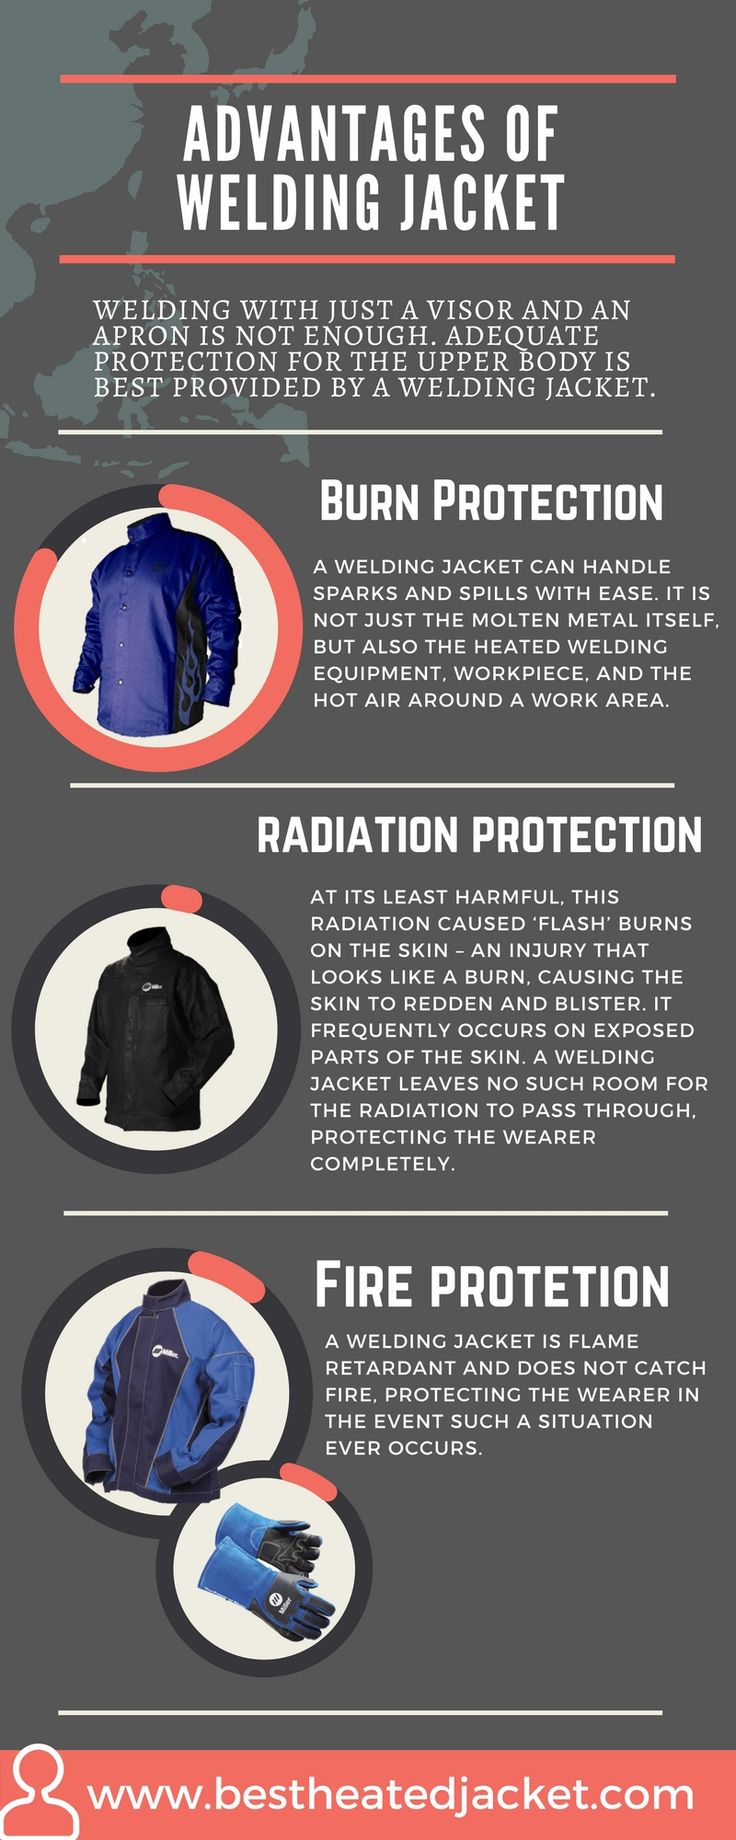 Government stick rules for the safety of welding, which are very much necessary for protection. Welding Jacket protects your upper body part and saves from UV and harmful radiation, damaged skin. Stylish and Colorful welding jackets are now available for man and woman. Here I have described advantages of welding jacket. https://bestheatedjacket.com/best-welding-jacket-reviews/